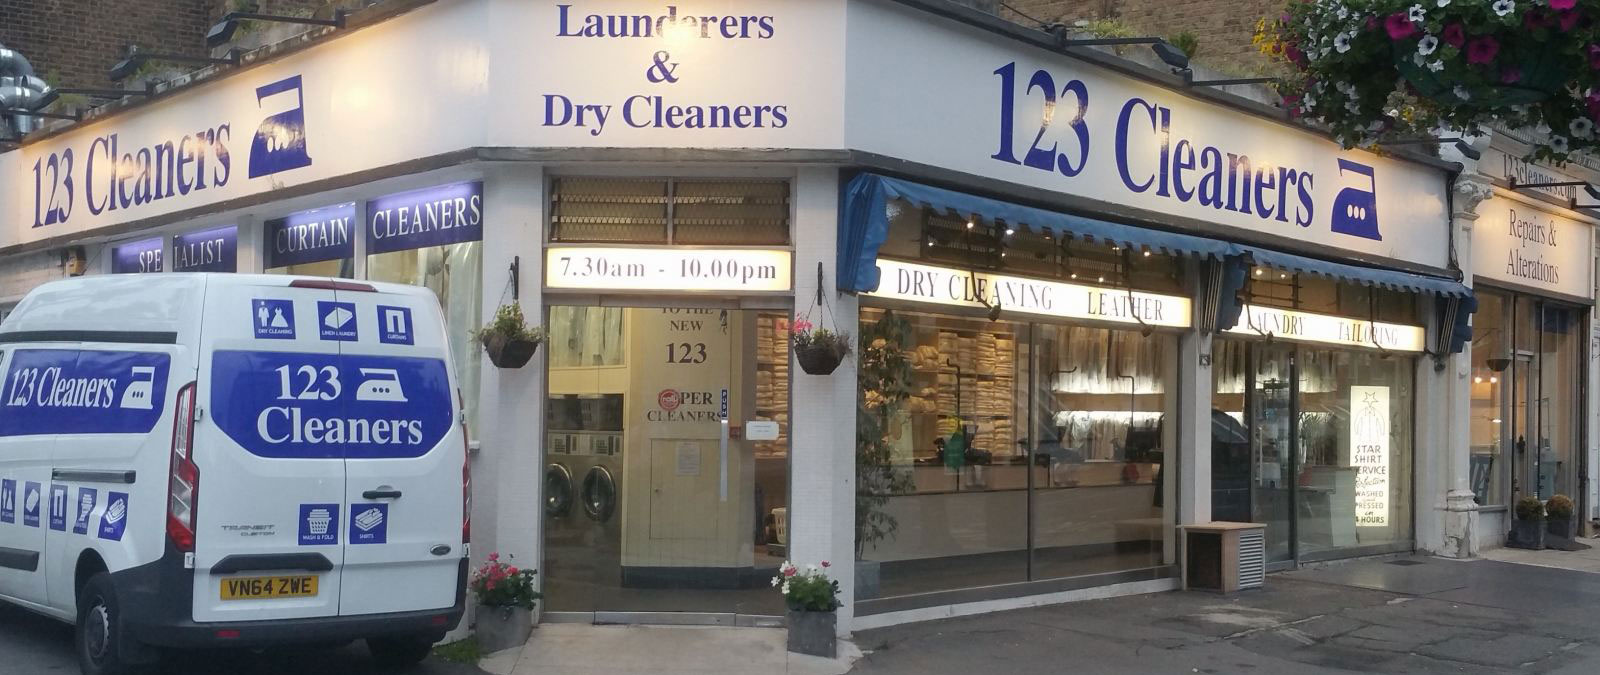 123 Cleaners Shop Front